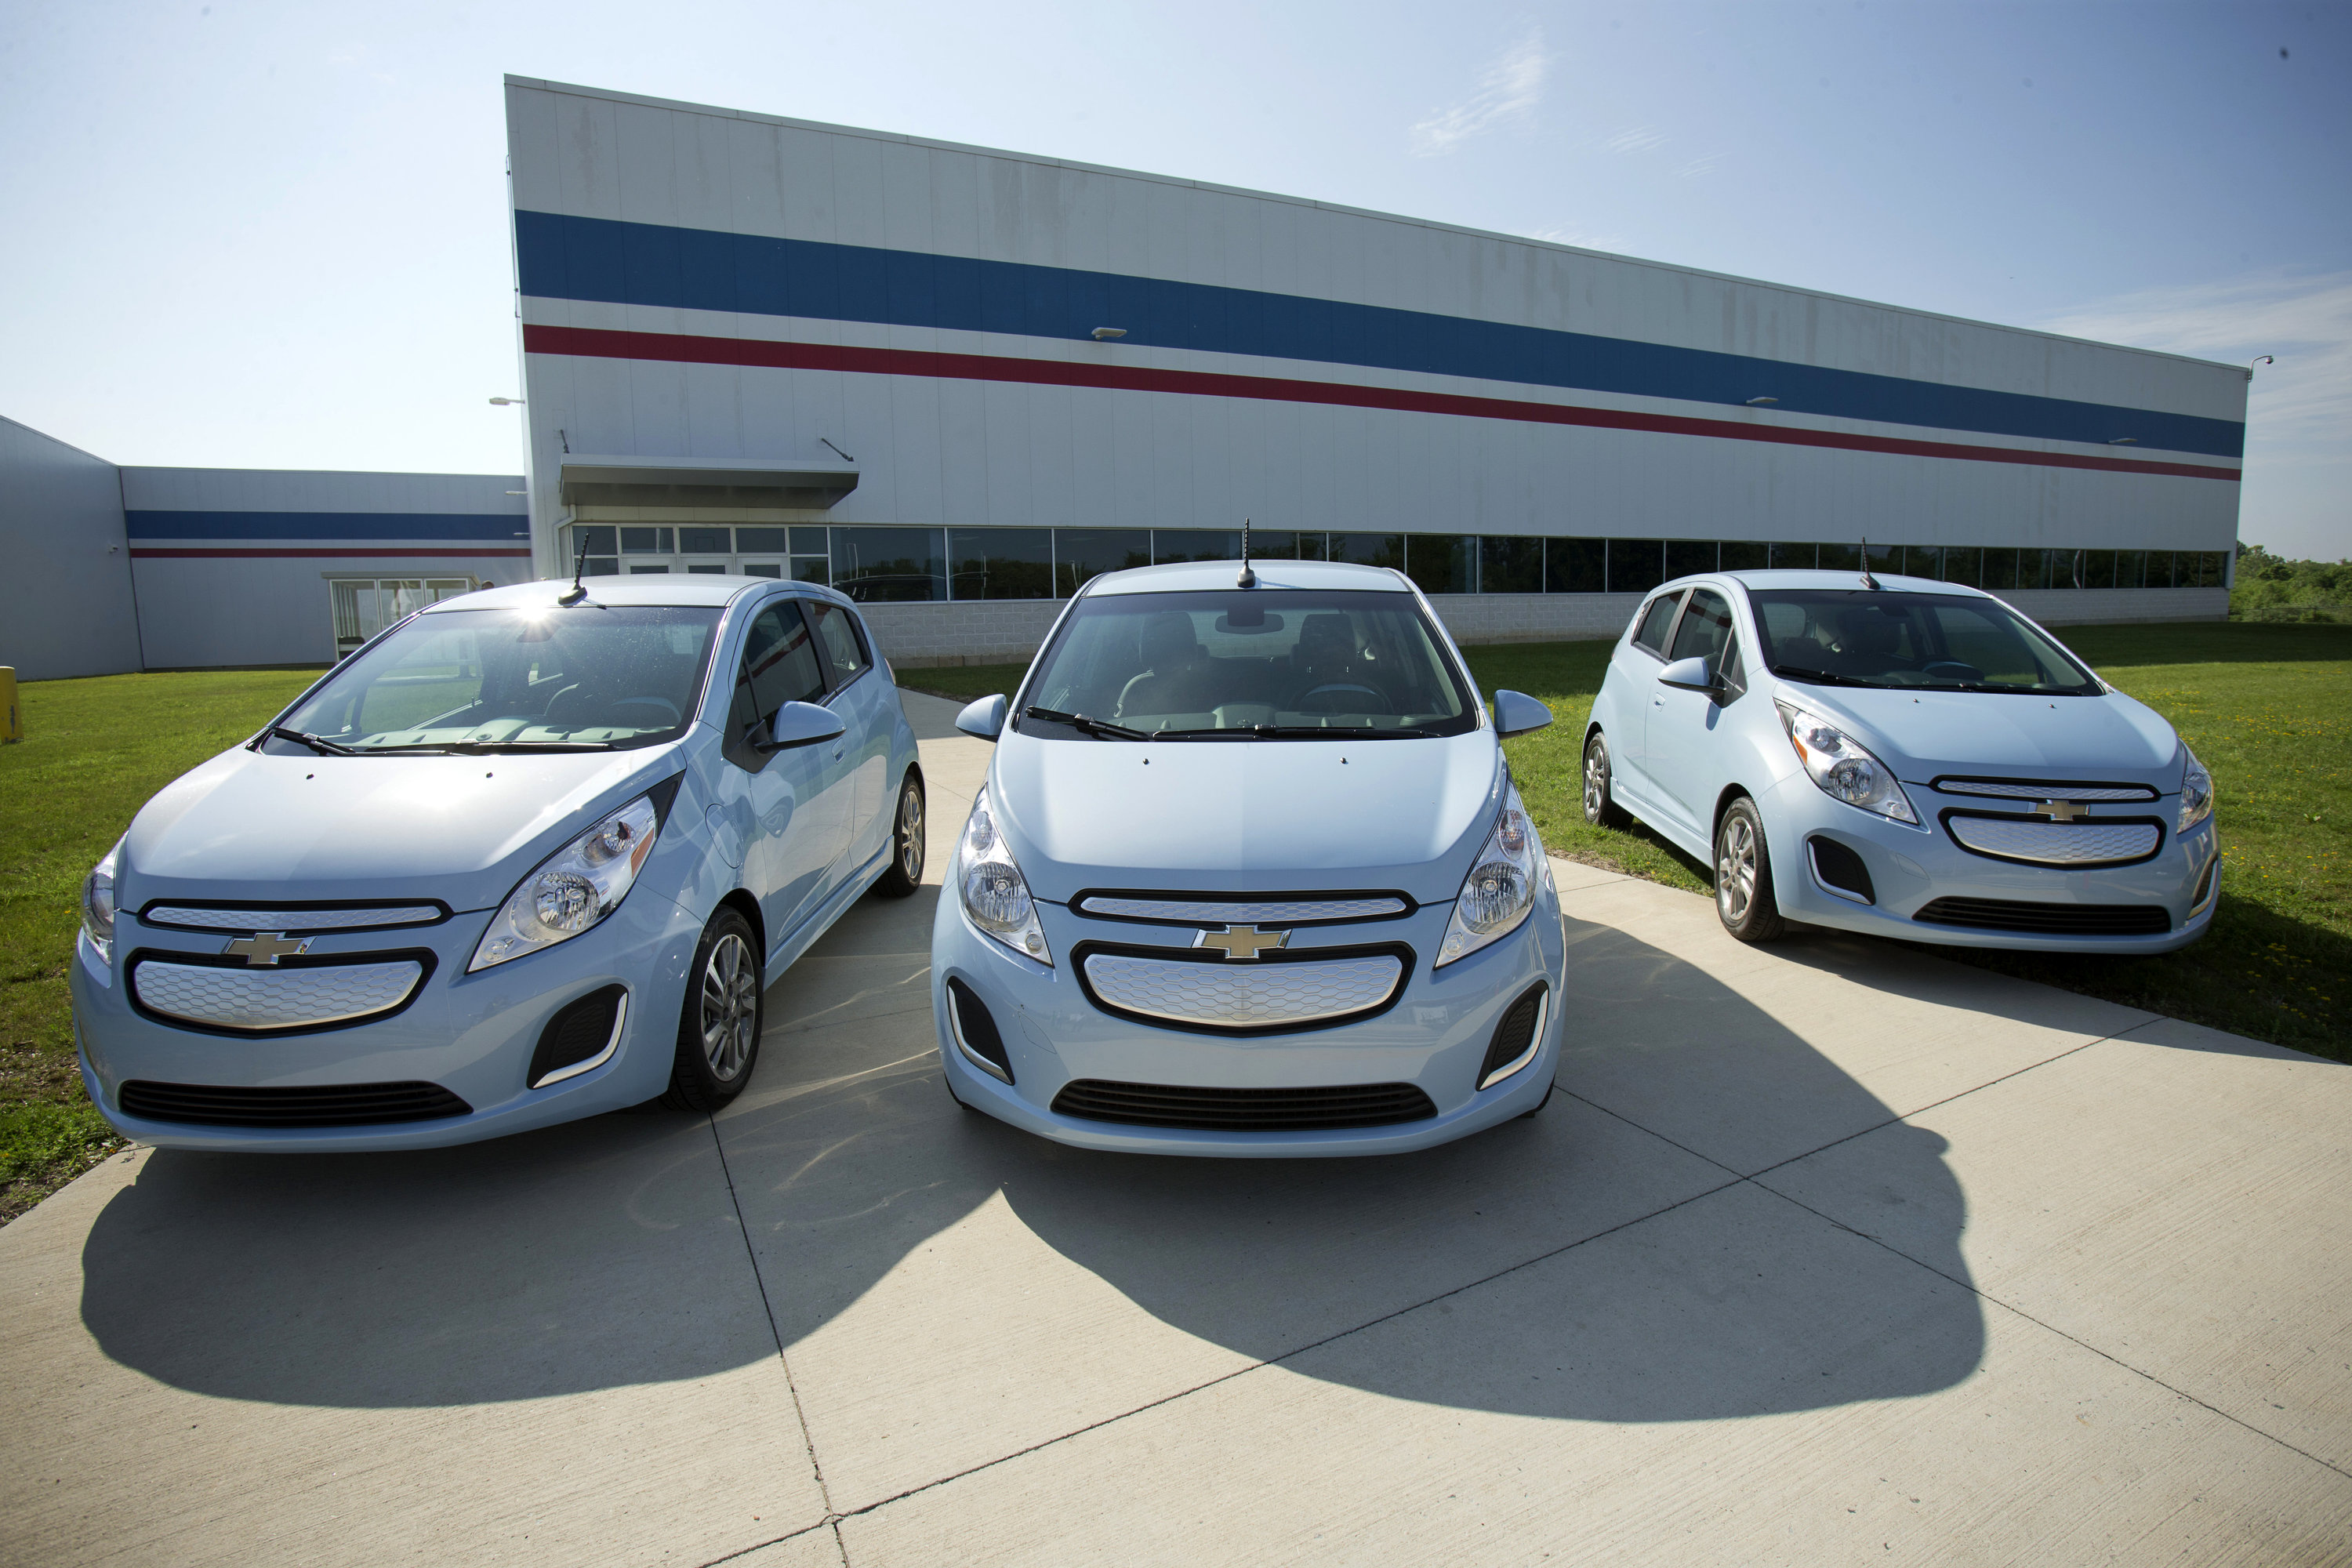 2015 Chevrolet Spark EV Motor and Drive Unit are Built in an Eco